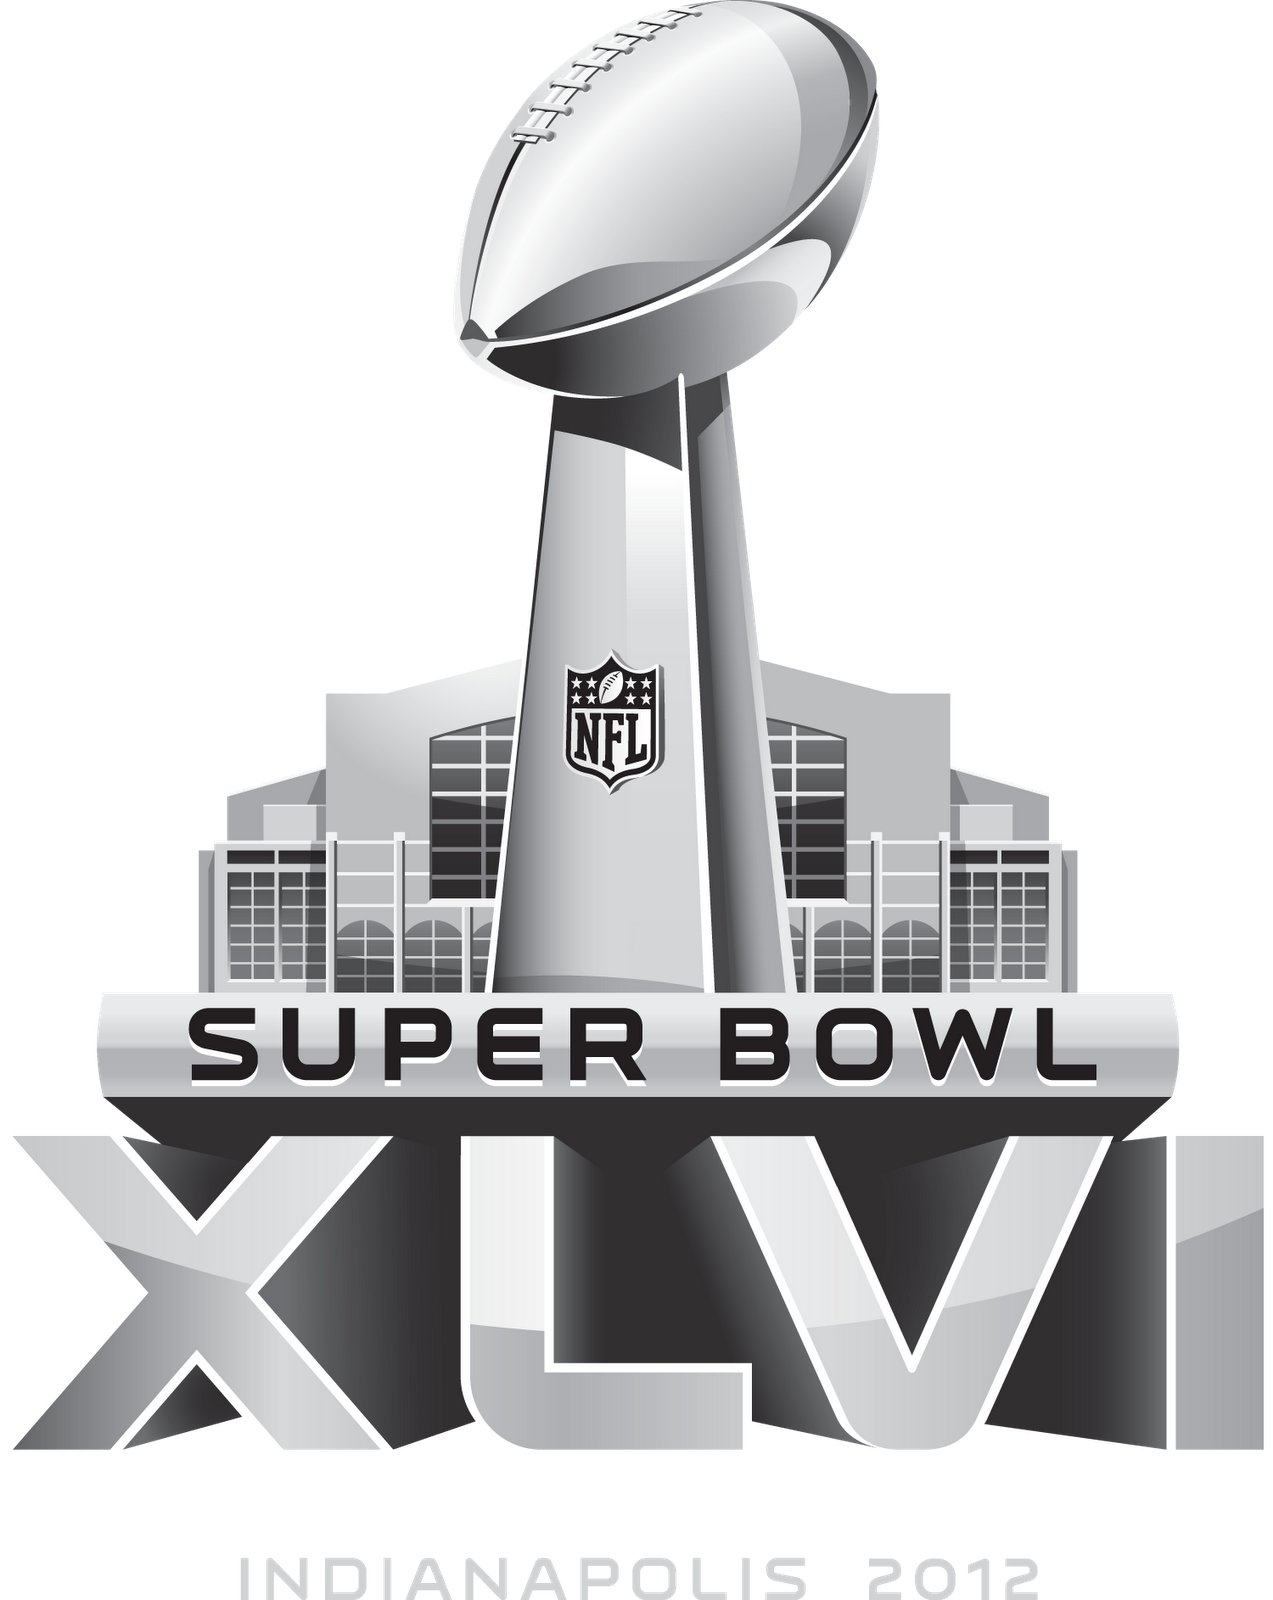 Super Bowl Xlix Logo Png Images   Pictures   Becuo